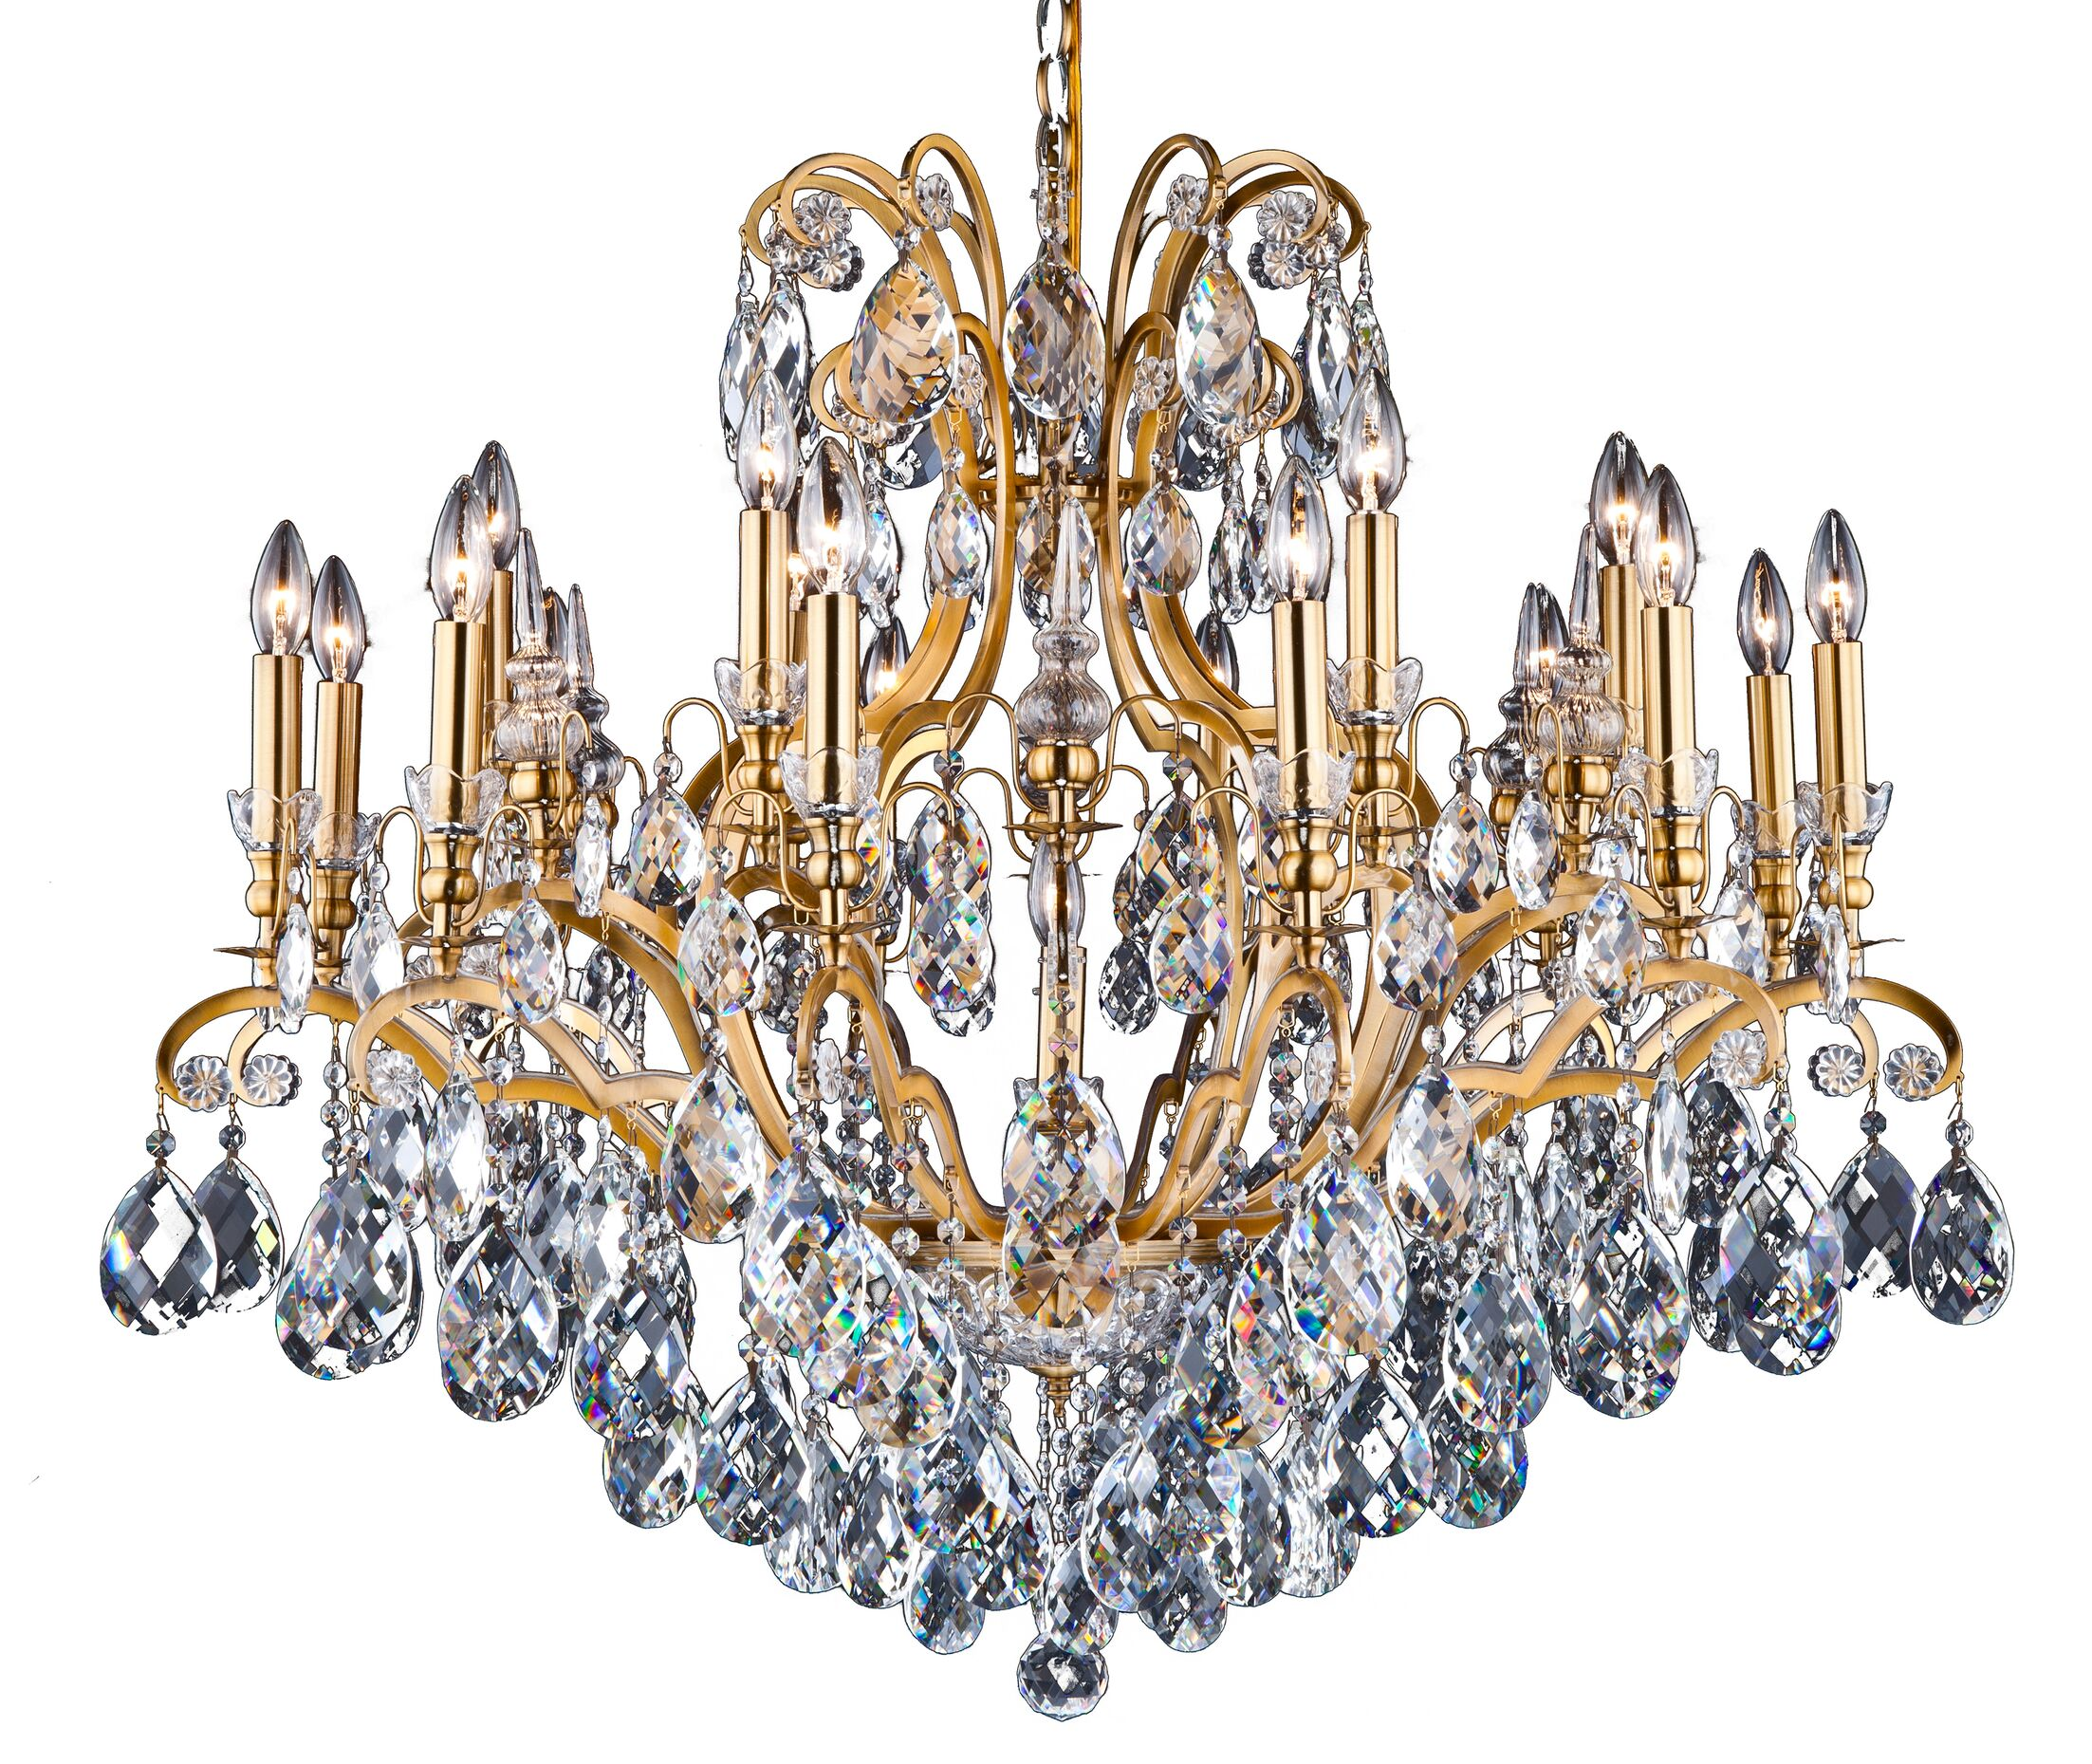 Livengood 19-Light Candle Style Chandelier Finish: Antique Brass